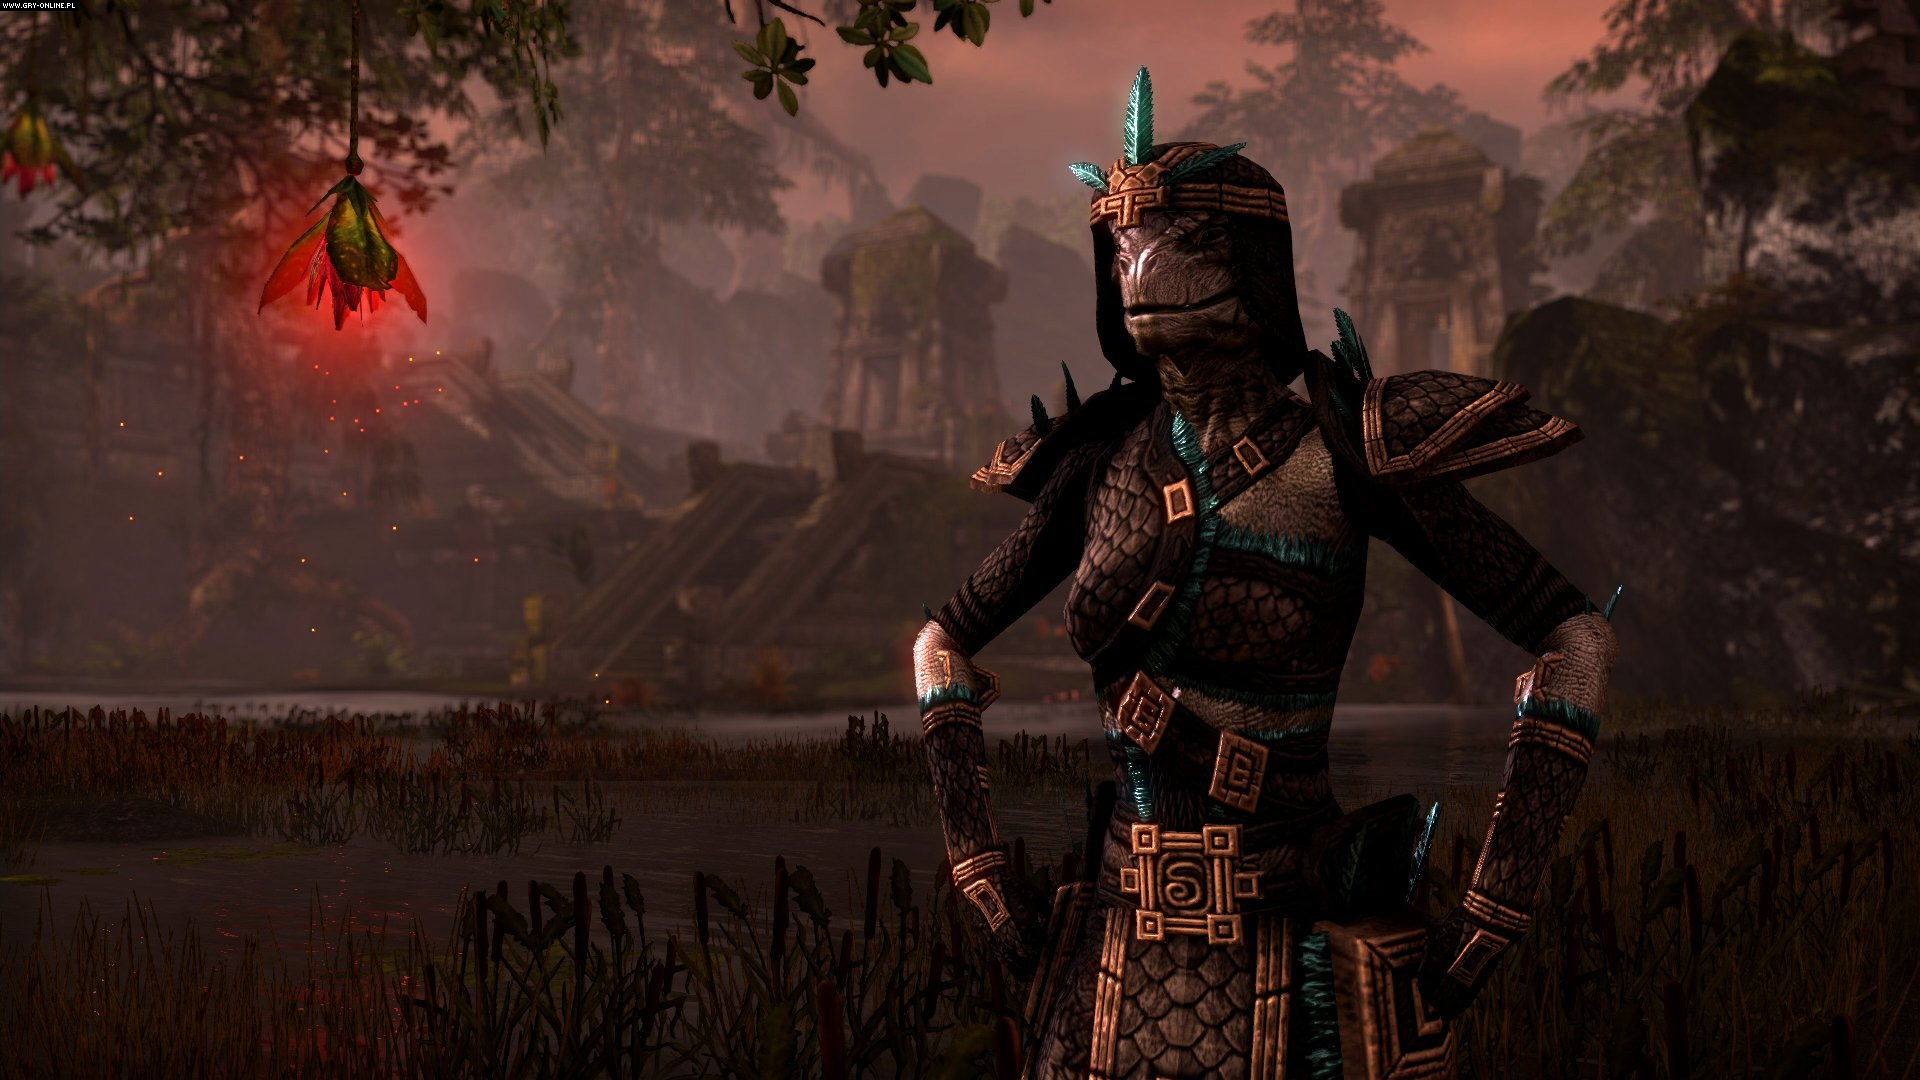 The Elder Scrolls Online: Tamriel Unlimited PC, PS4, XONE Gry Screen 70/104, ZeniMax Online Studios, Bethesda Softworks